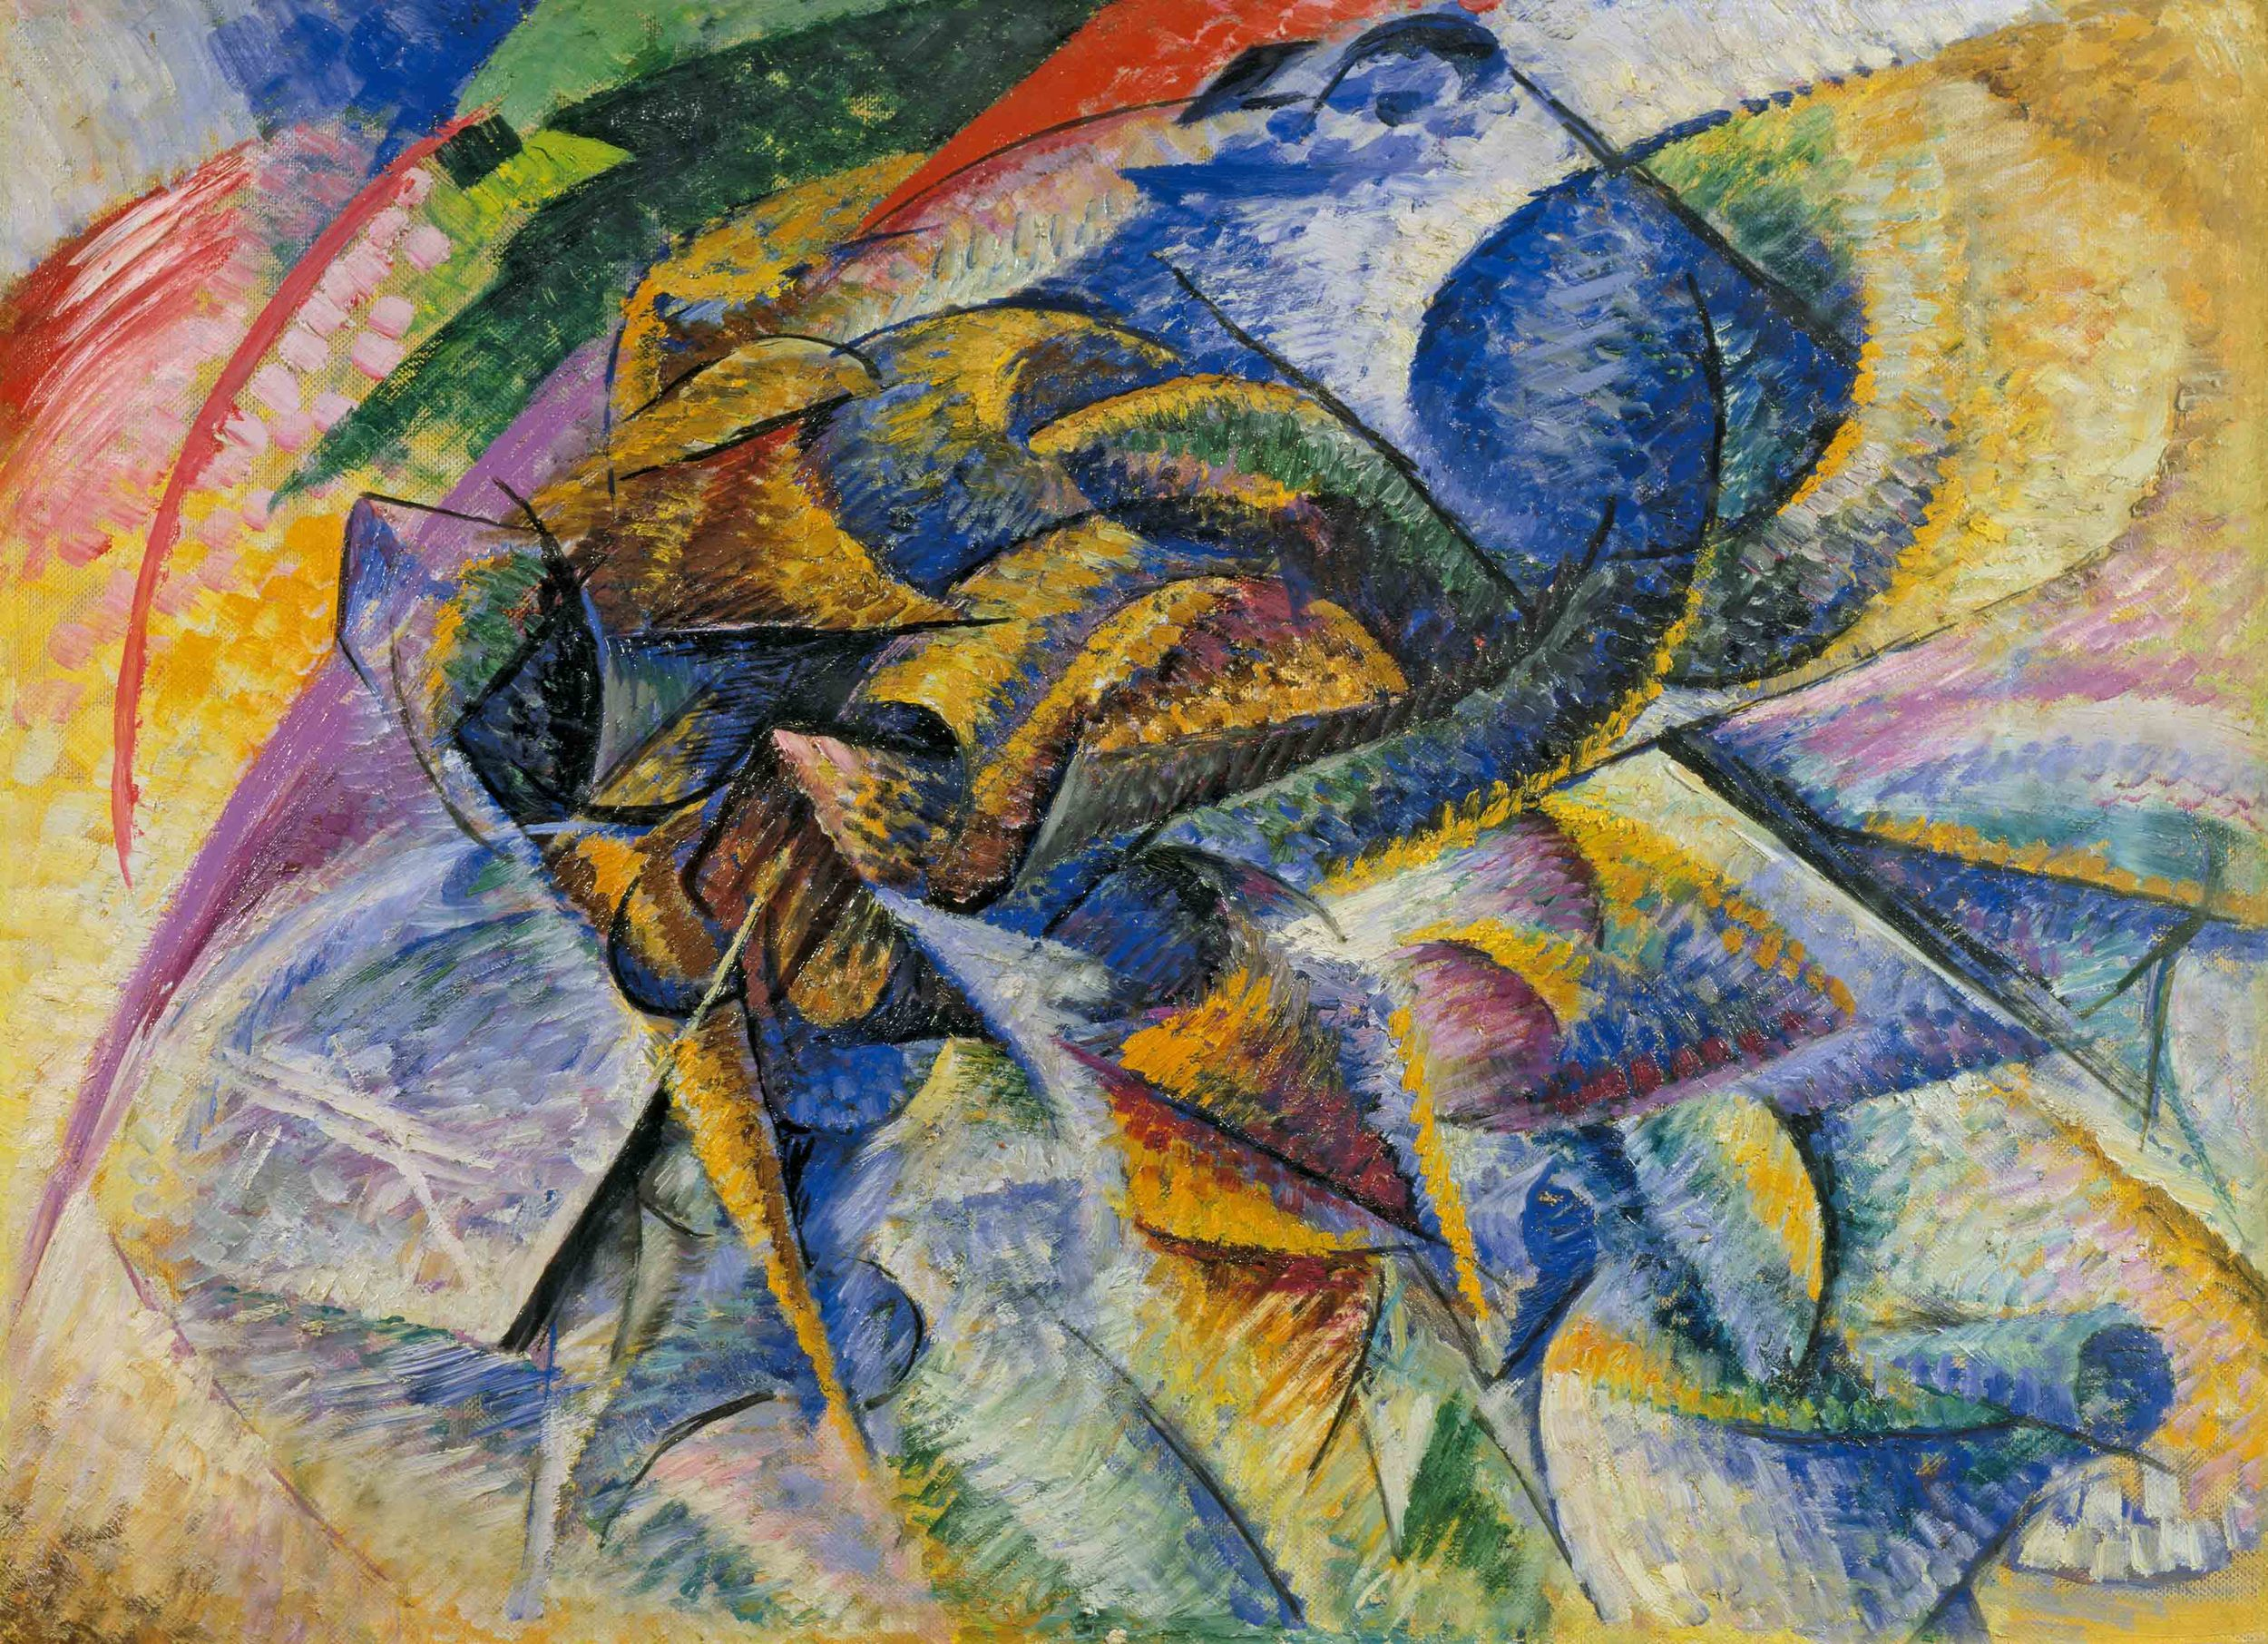 Umberto Boccioni,  Dynamism of a Cyclist , 1913, Peggy Guggenheim Collection, Venice.